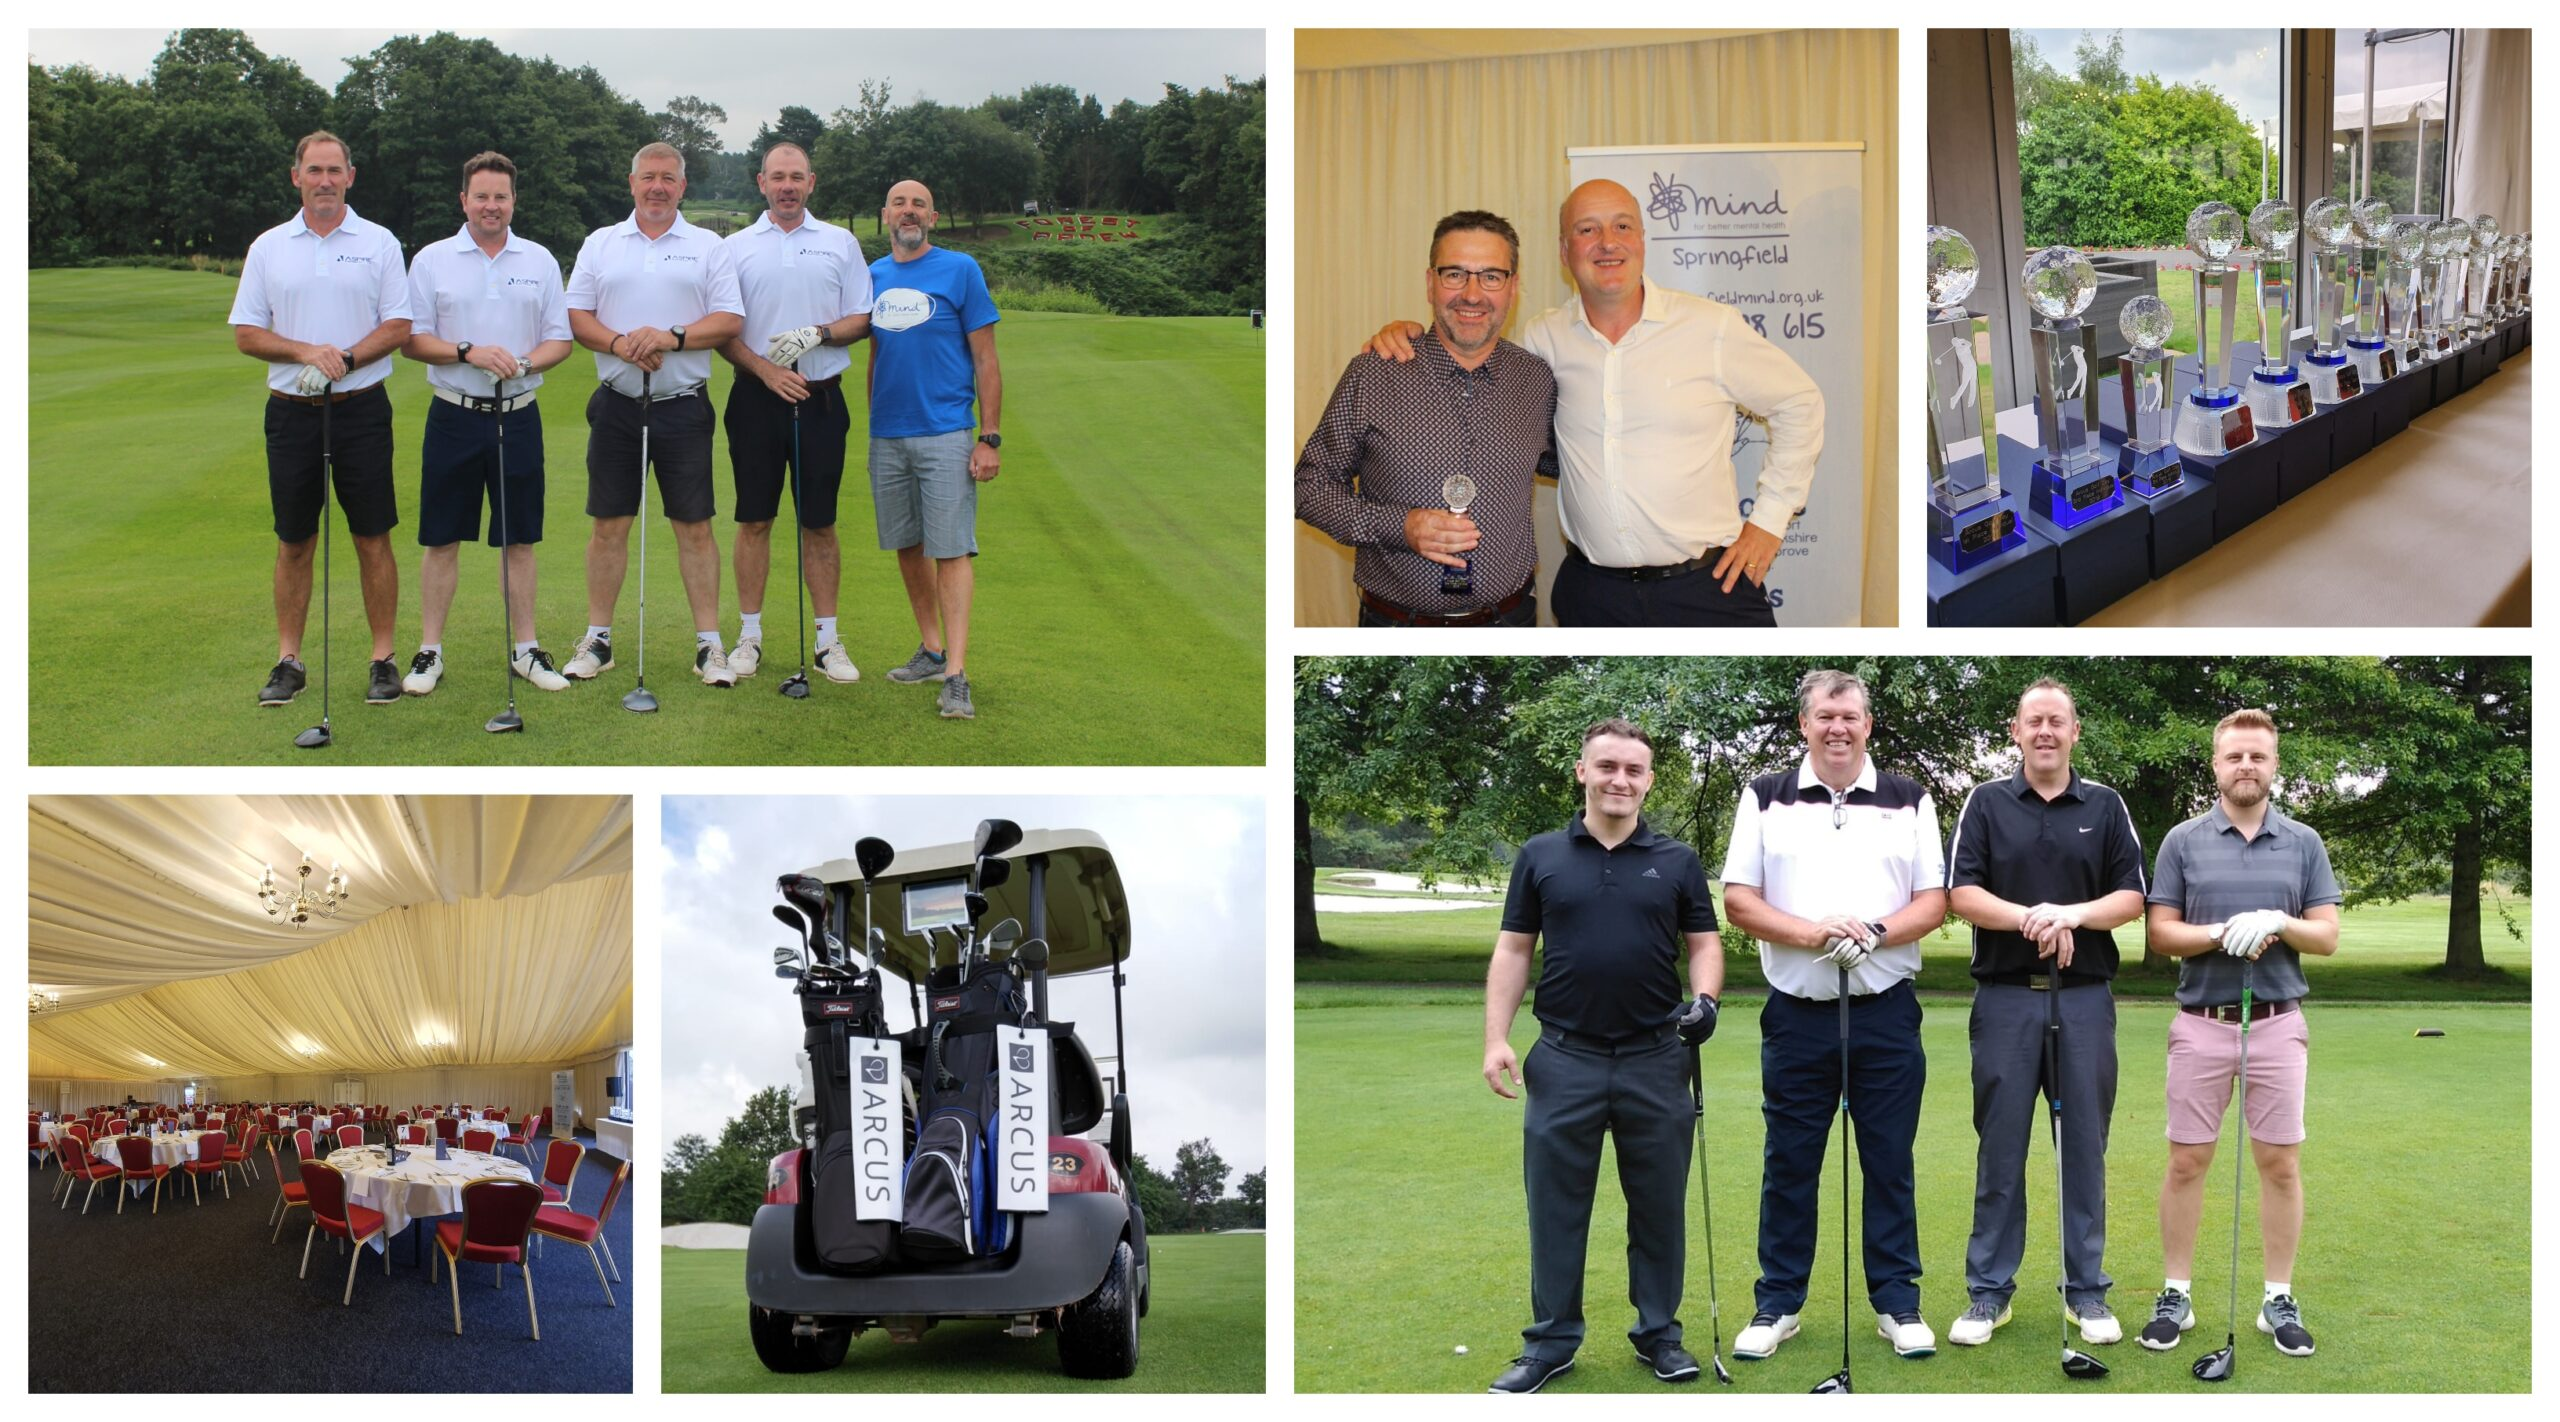 Arcus get a hole in one and raise over £32,000 for Mind and Springfield Mind